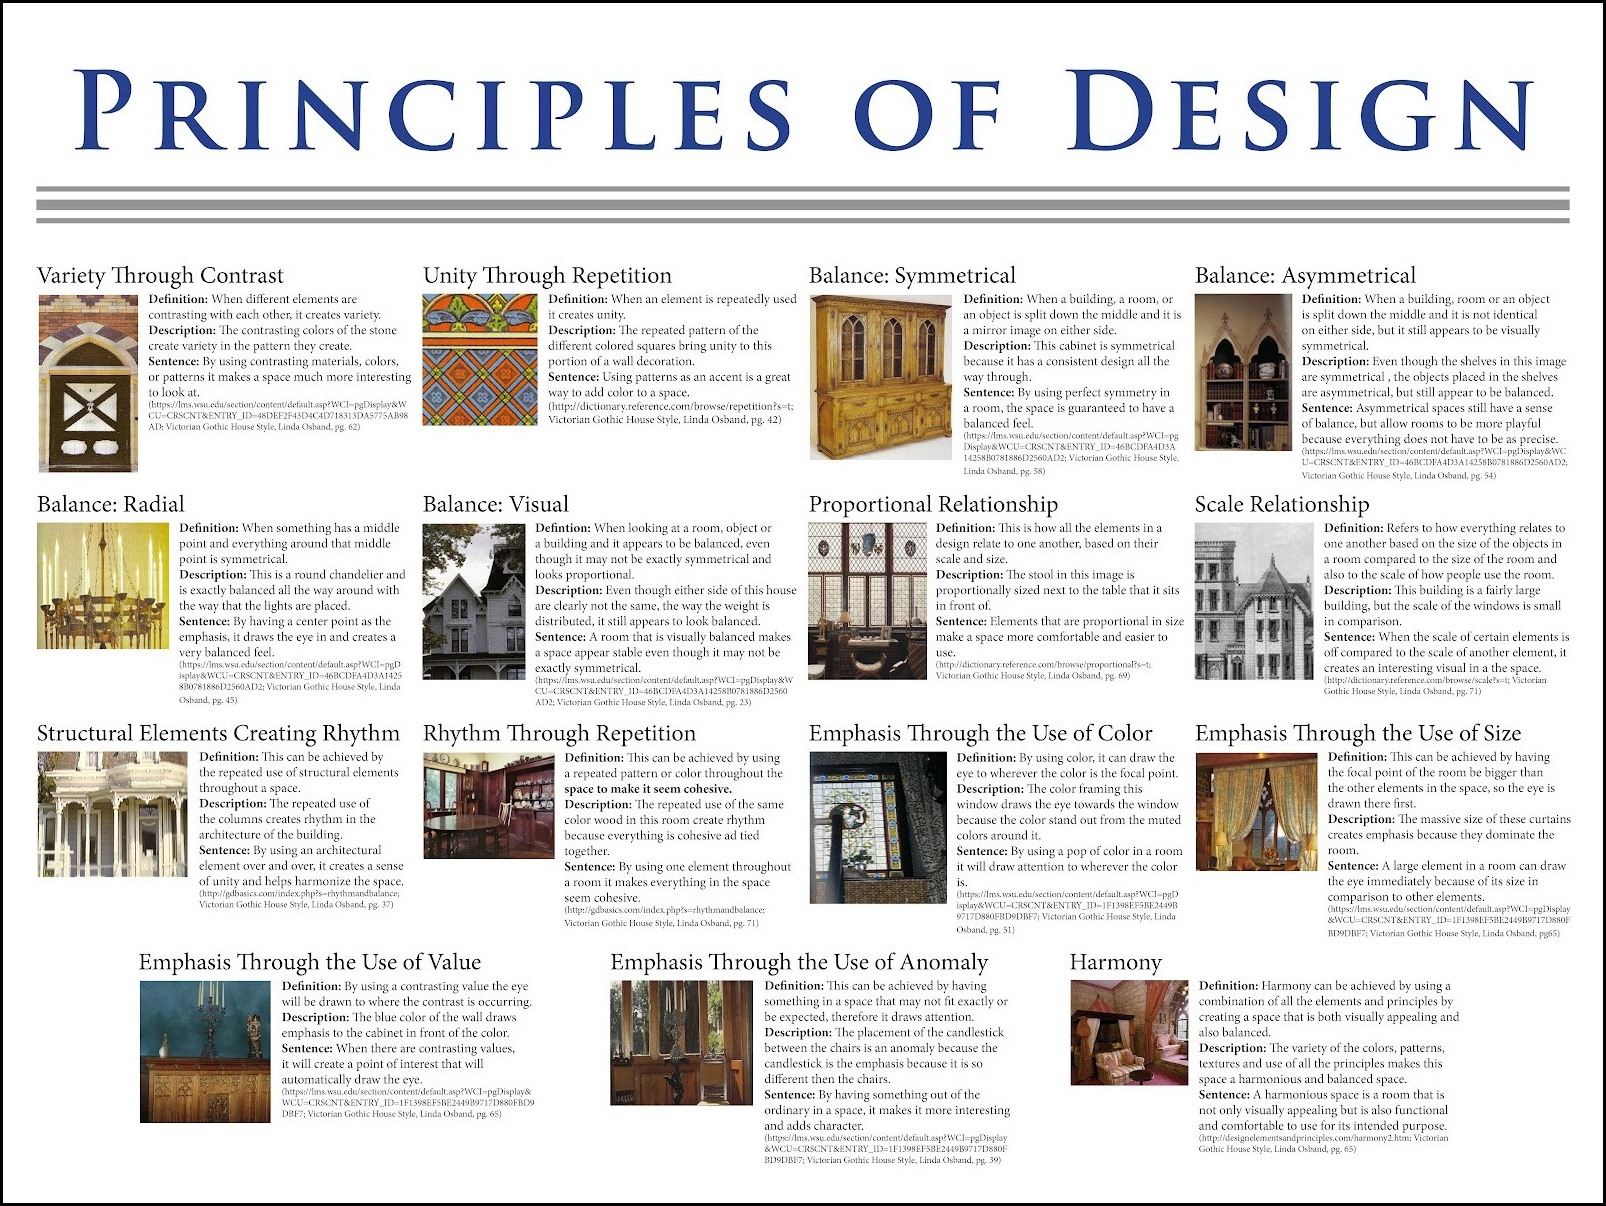 By Definition, A Critique Must Include Persons Who Are External To The  Design Team. Experience Top Quality Options And Outstanding Value Only At  Household ...